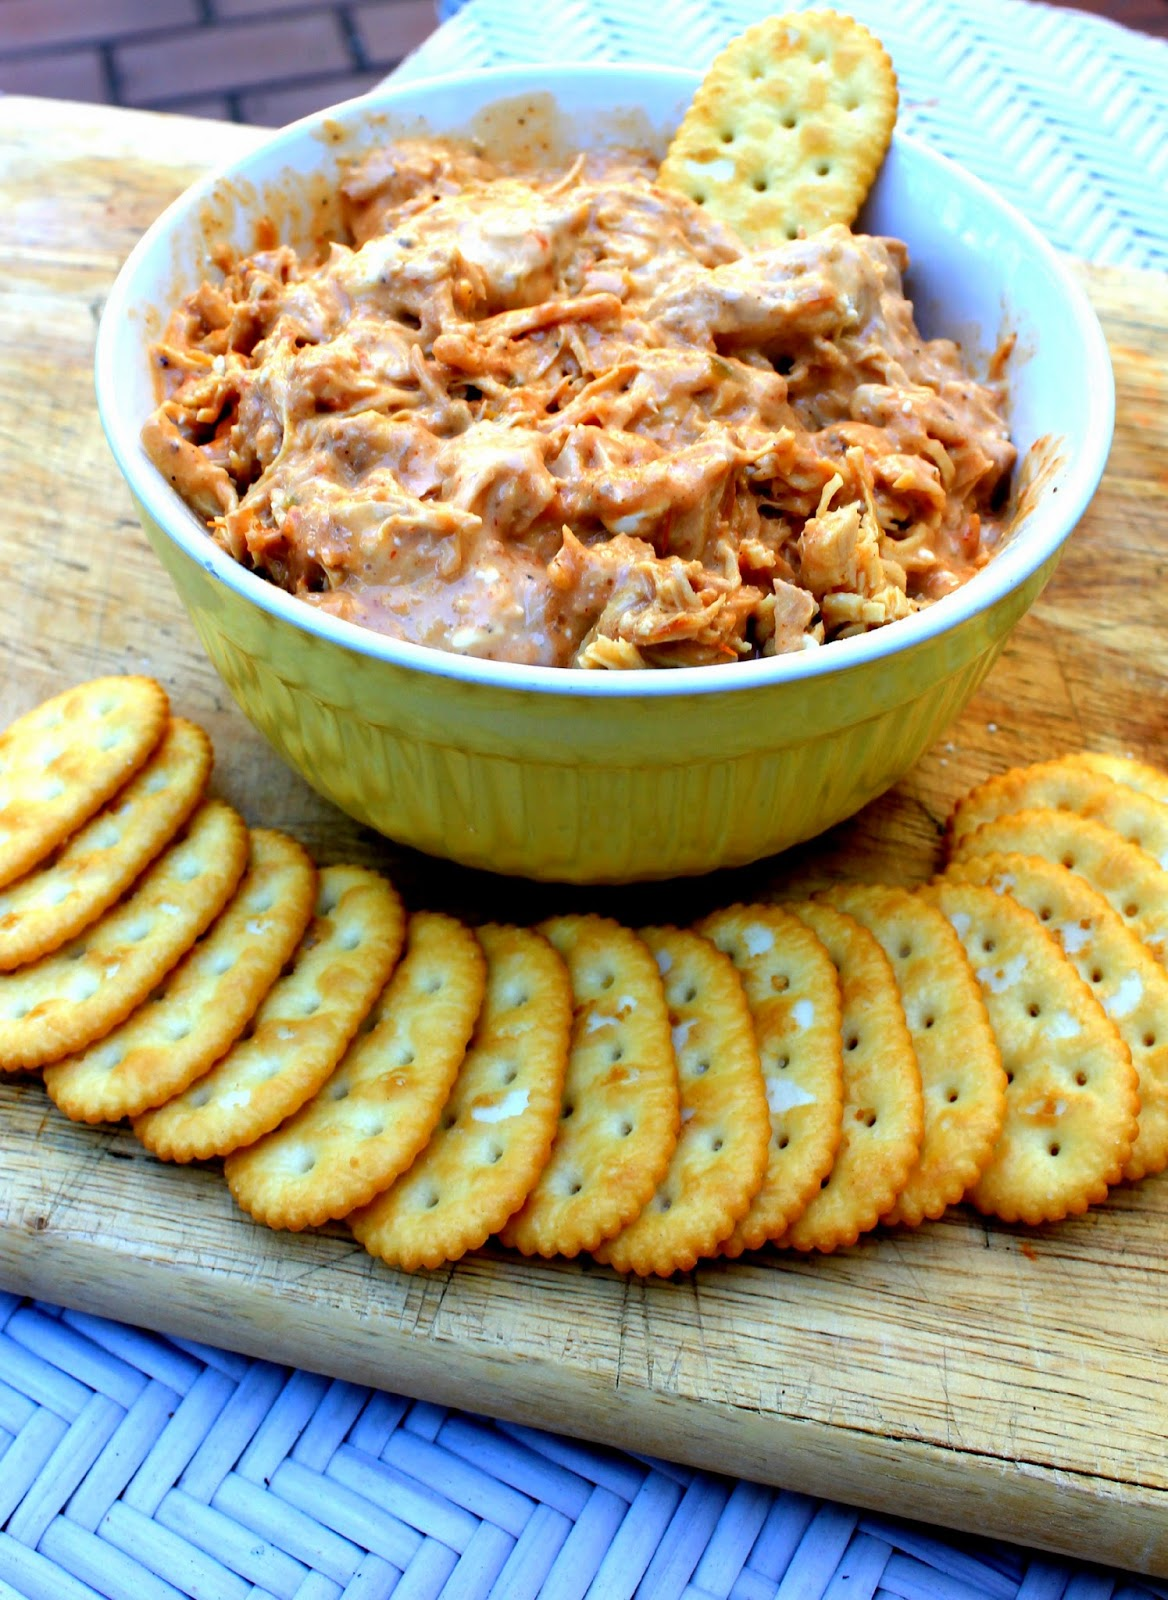 Buffalo Chicken and Bleu Cheese Dip recipe